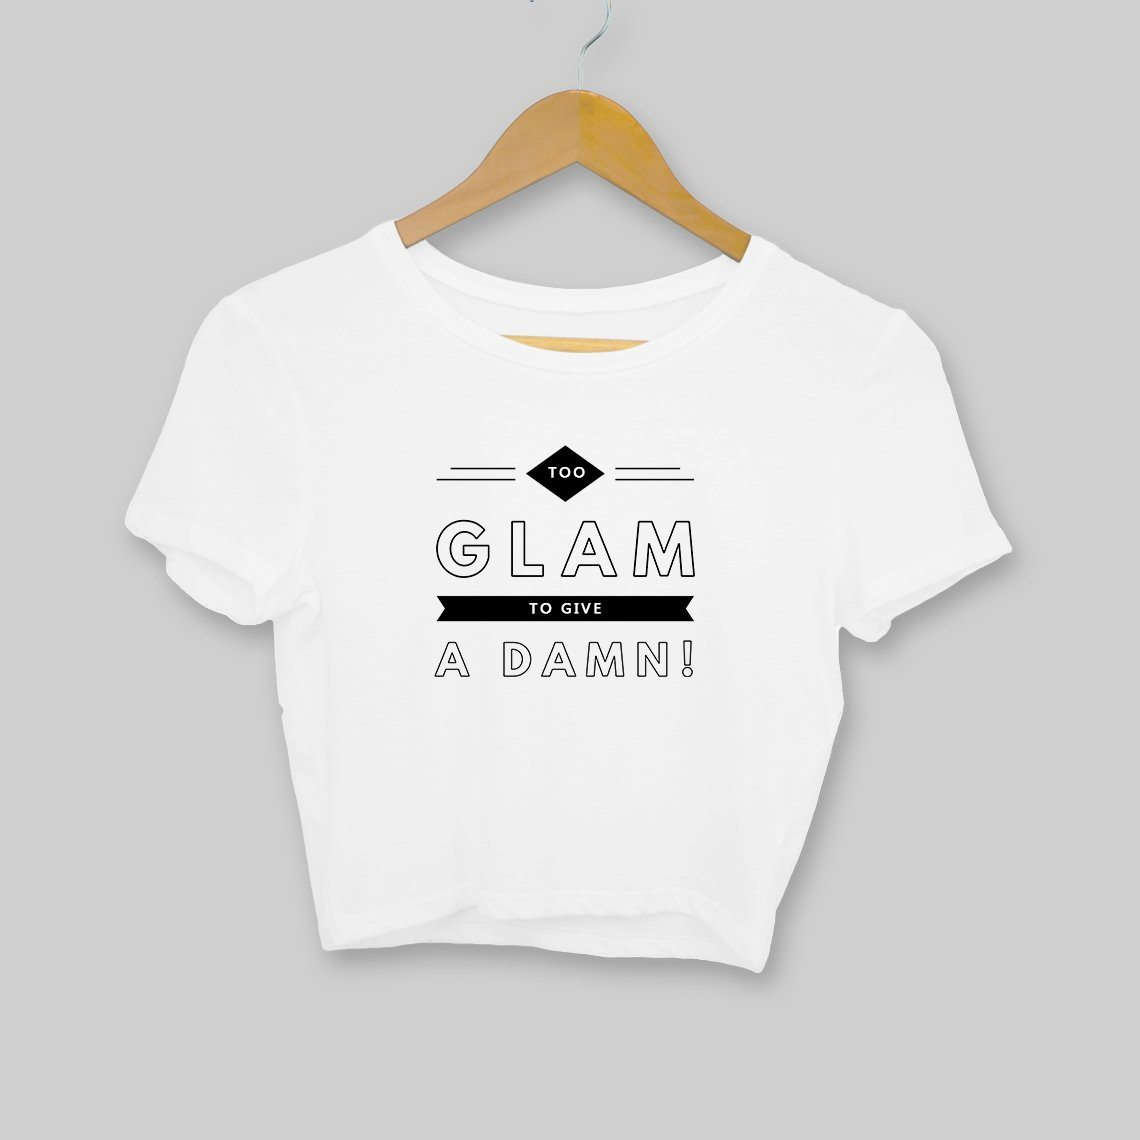 Too Glam! Clothing Printrove White S